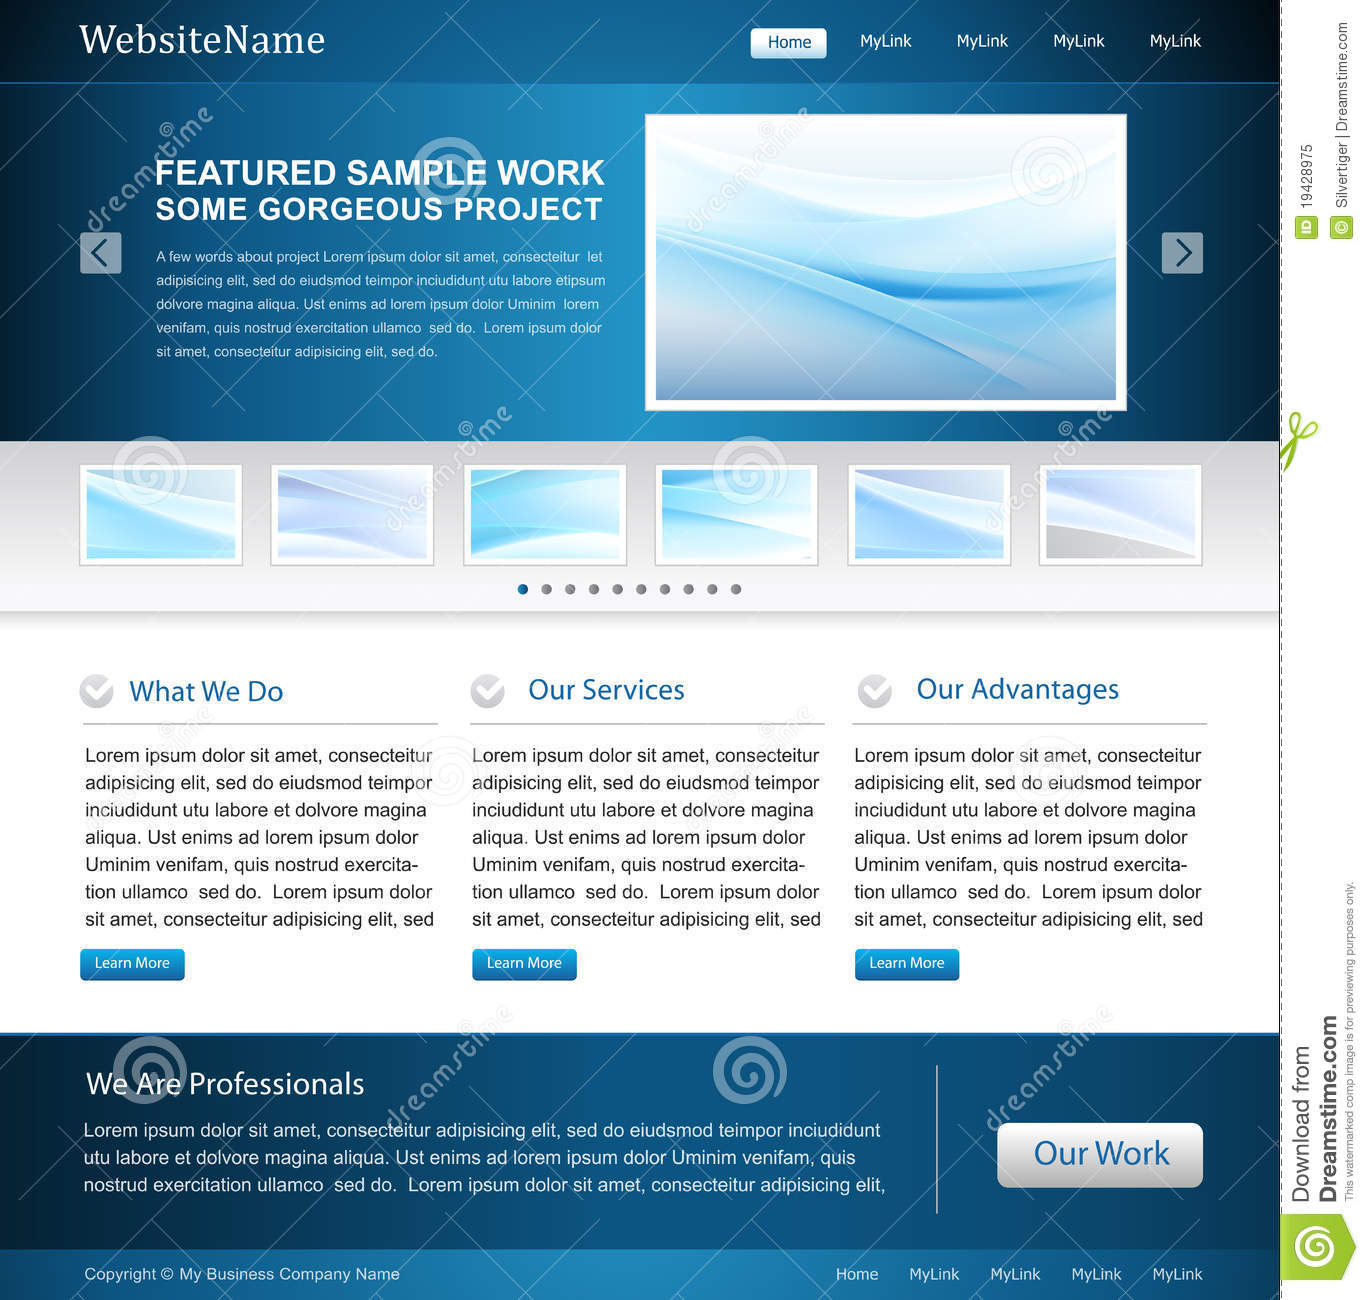 Business Website Design Template Royalty Free Stock Photo Image 19428975